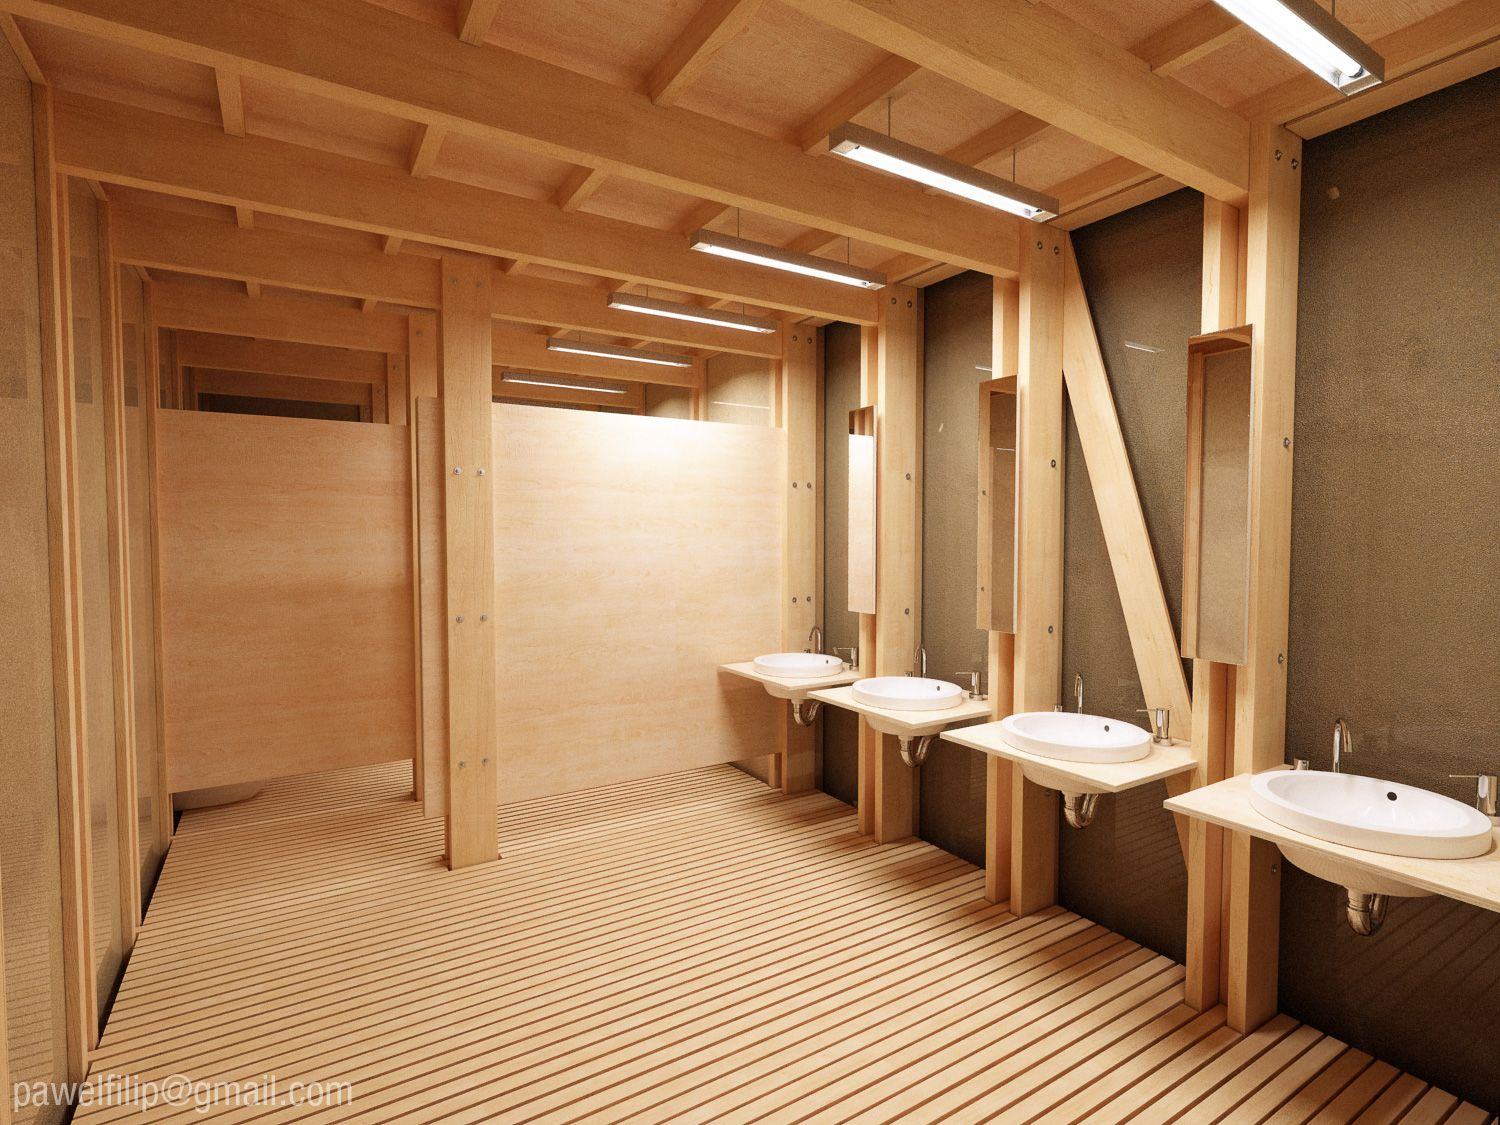 Public Toilet Interior Night By Zmoodel On Deviantart Toilet Design Restroom Design Public Bathrooms